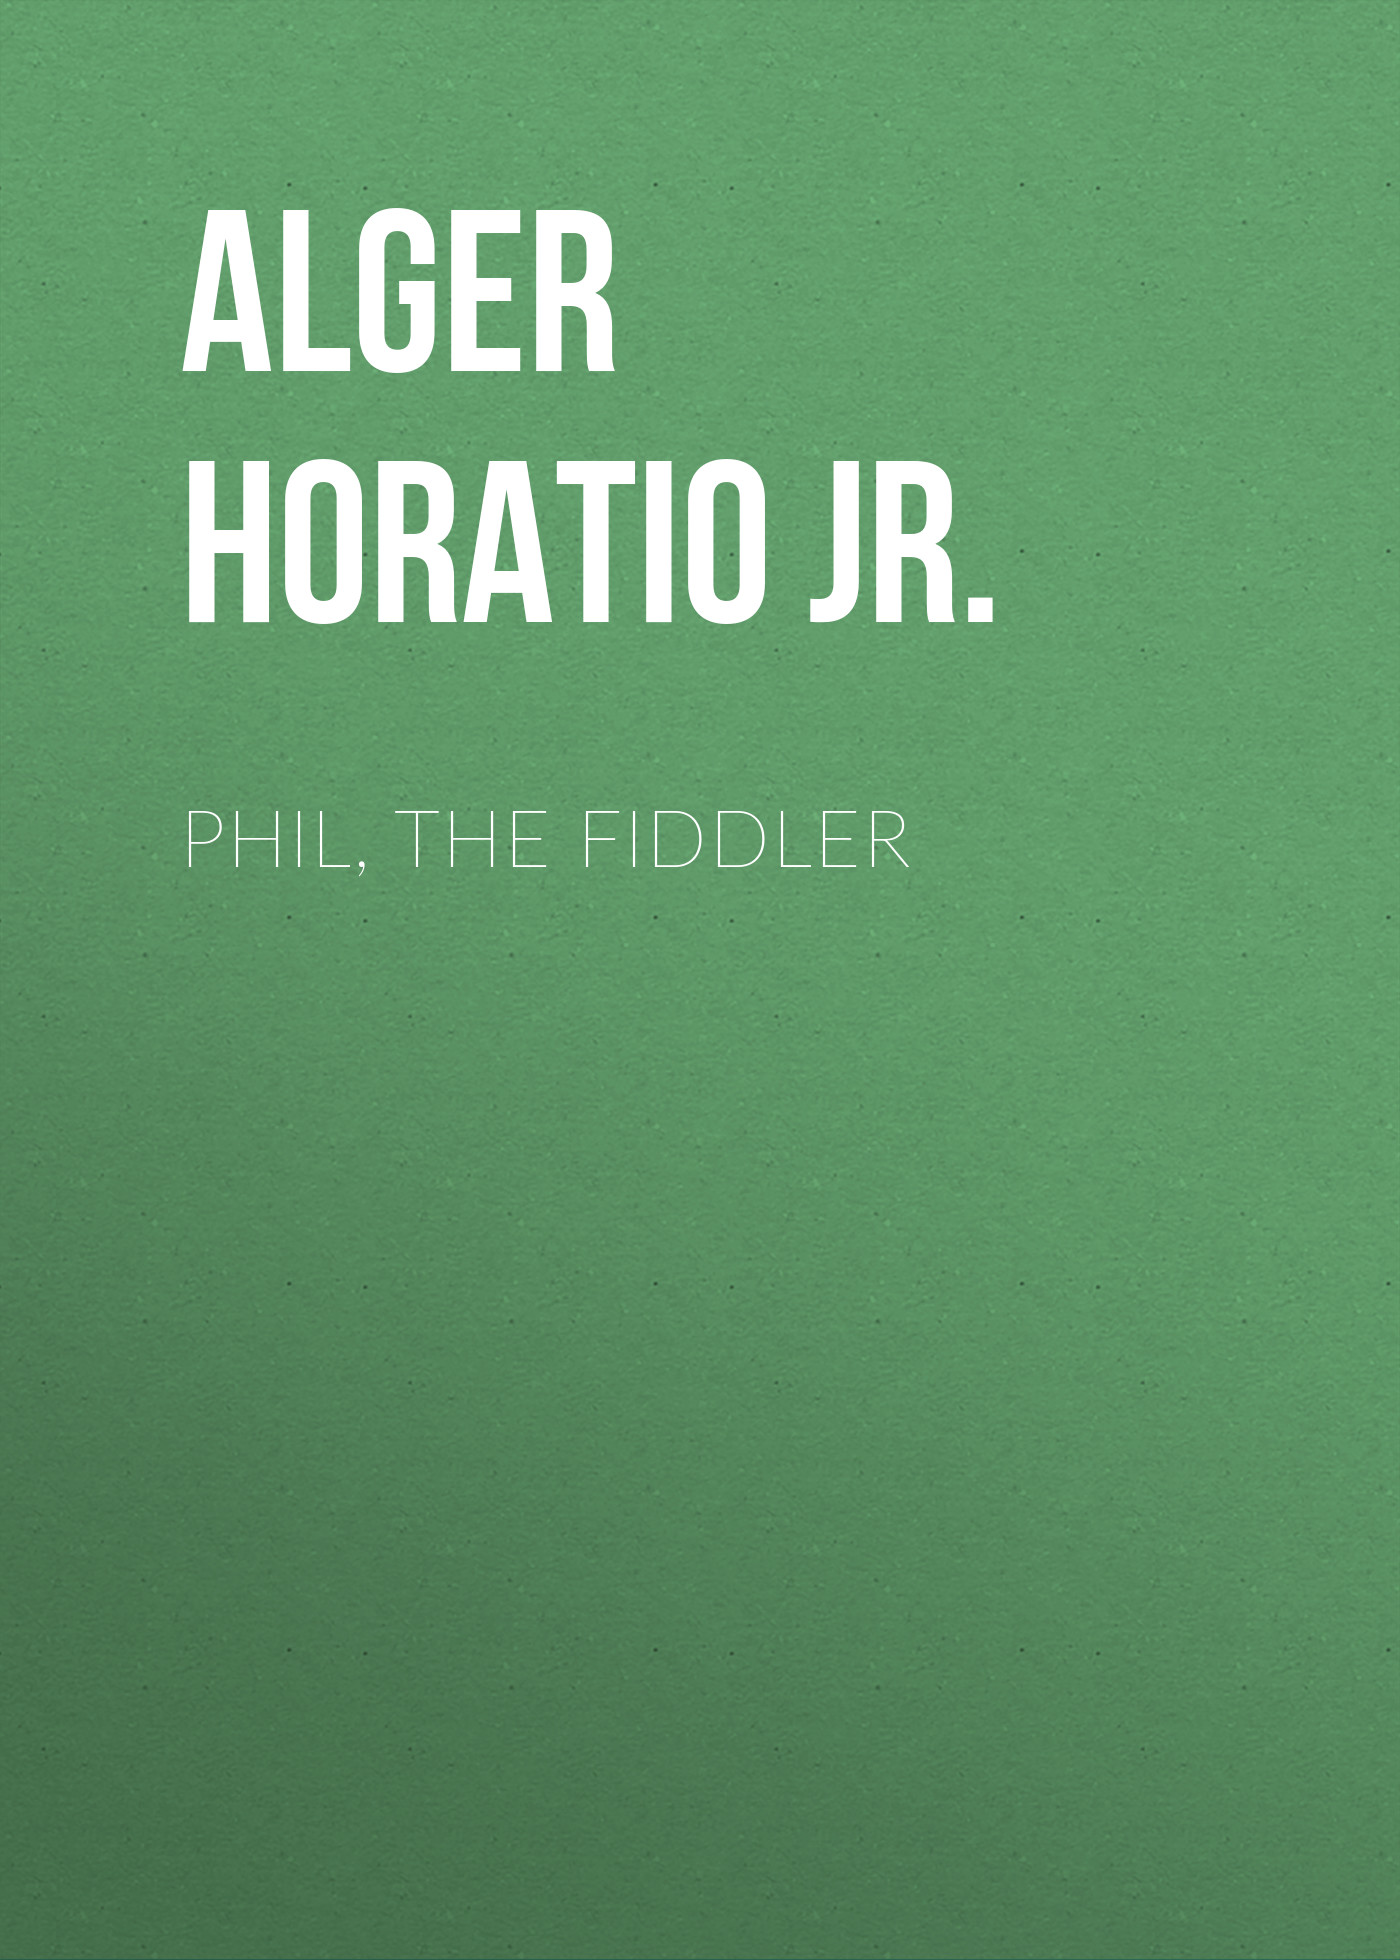 Alger Horatio Jr. Phil, the Fiddler [sa] new original authentic spot contact 3rt6015 1bb42 2pcs lot